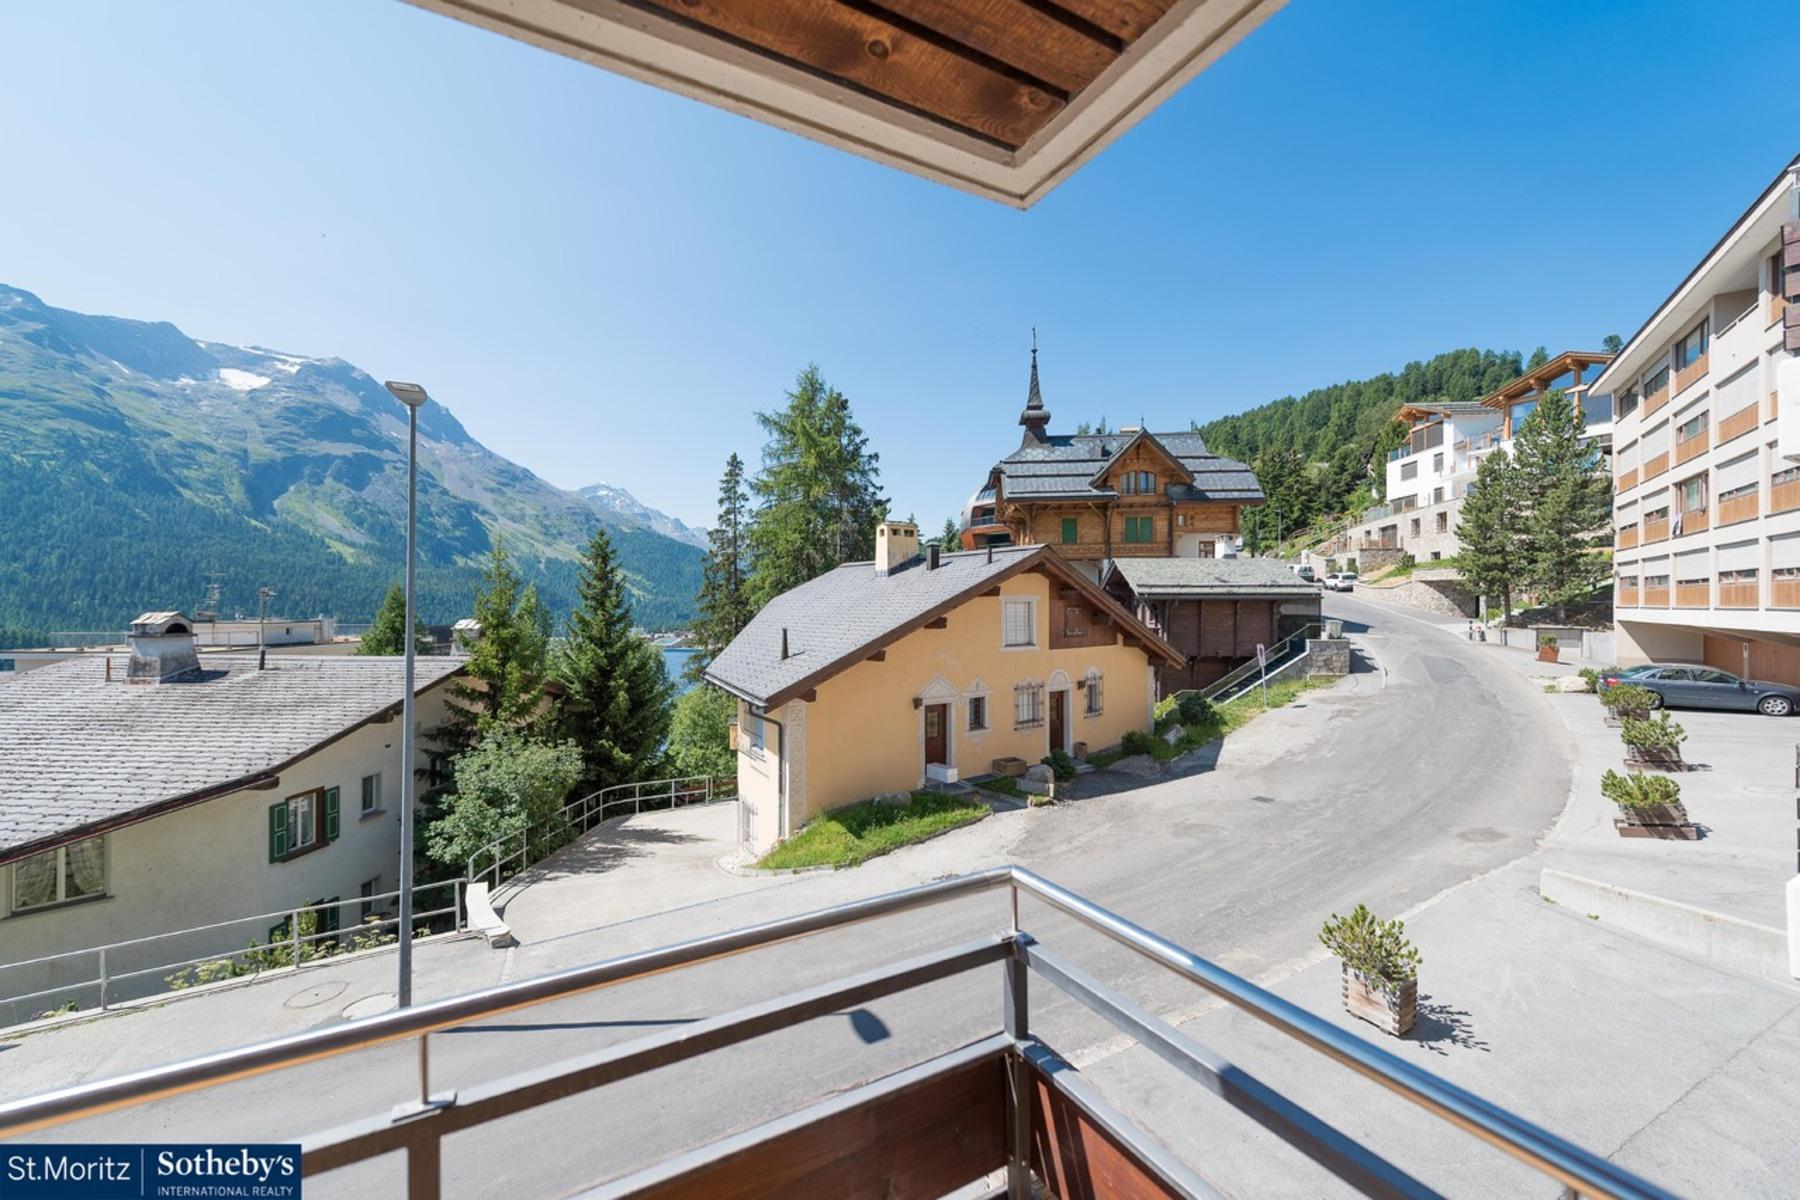 Appartement pour l Vente à Bright & luxurious furnished 2.5 room apartment in the center St. Moritz St. Moritz, Grisons, 7500 Suisse